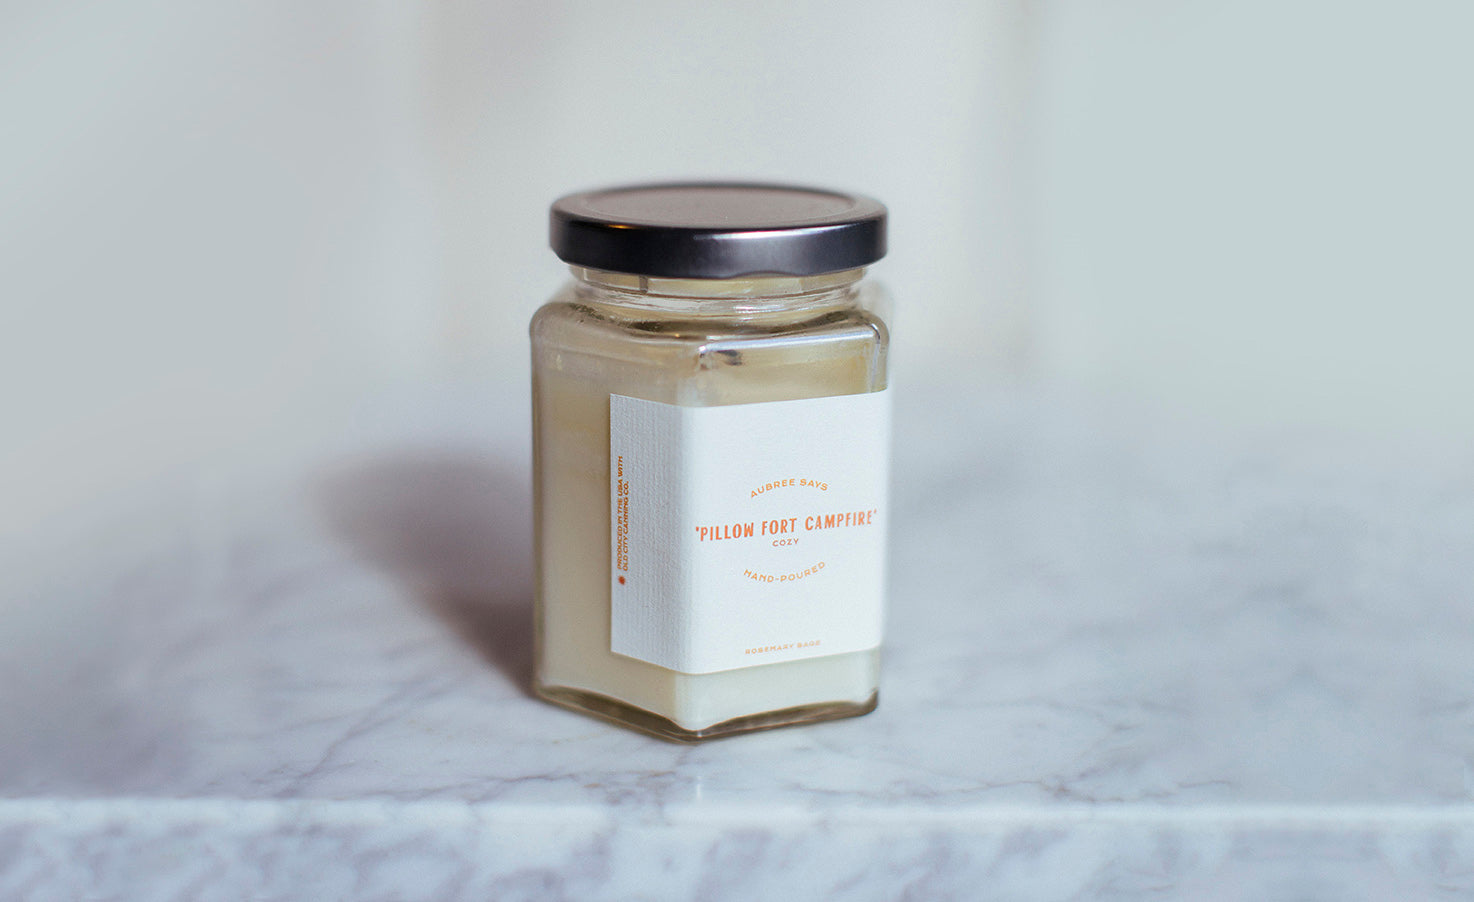 Scented candle for family fun